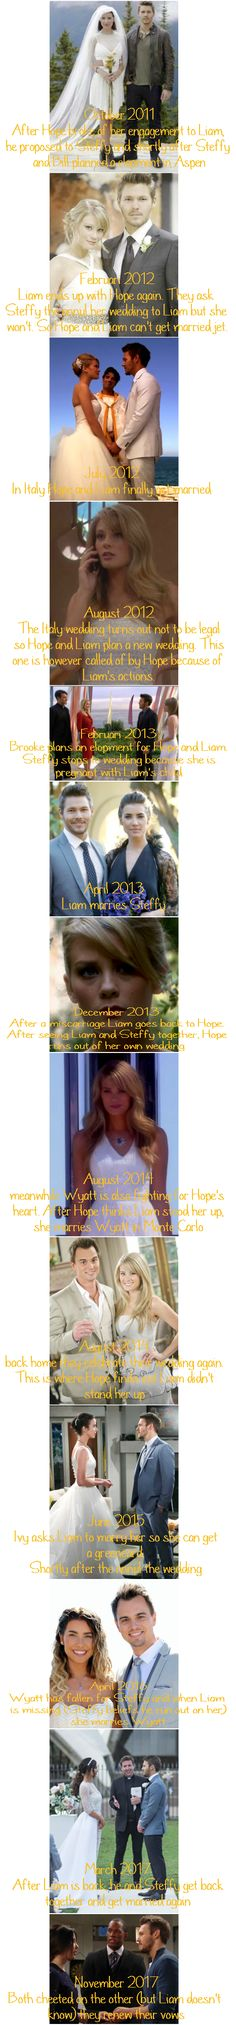 Over the past 7 years Hope-Liam-Steffy  |  Liam-Hope-Wyatt  |  Liam-Steffy-Wyatt have been triangling and there have been many wedding (attempts)